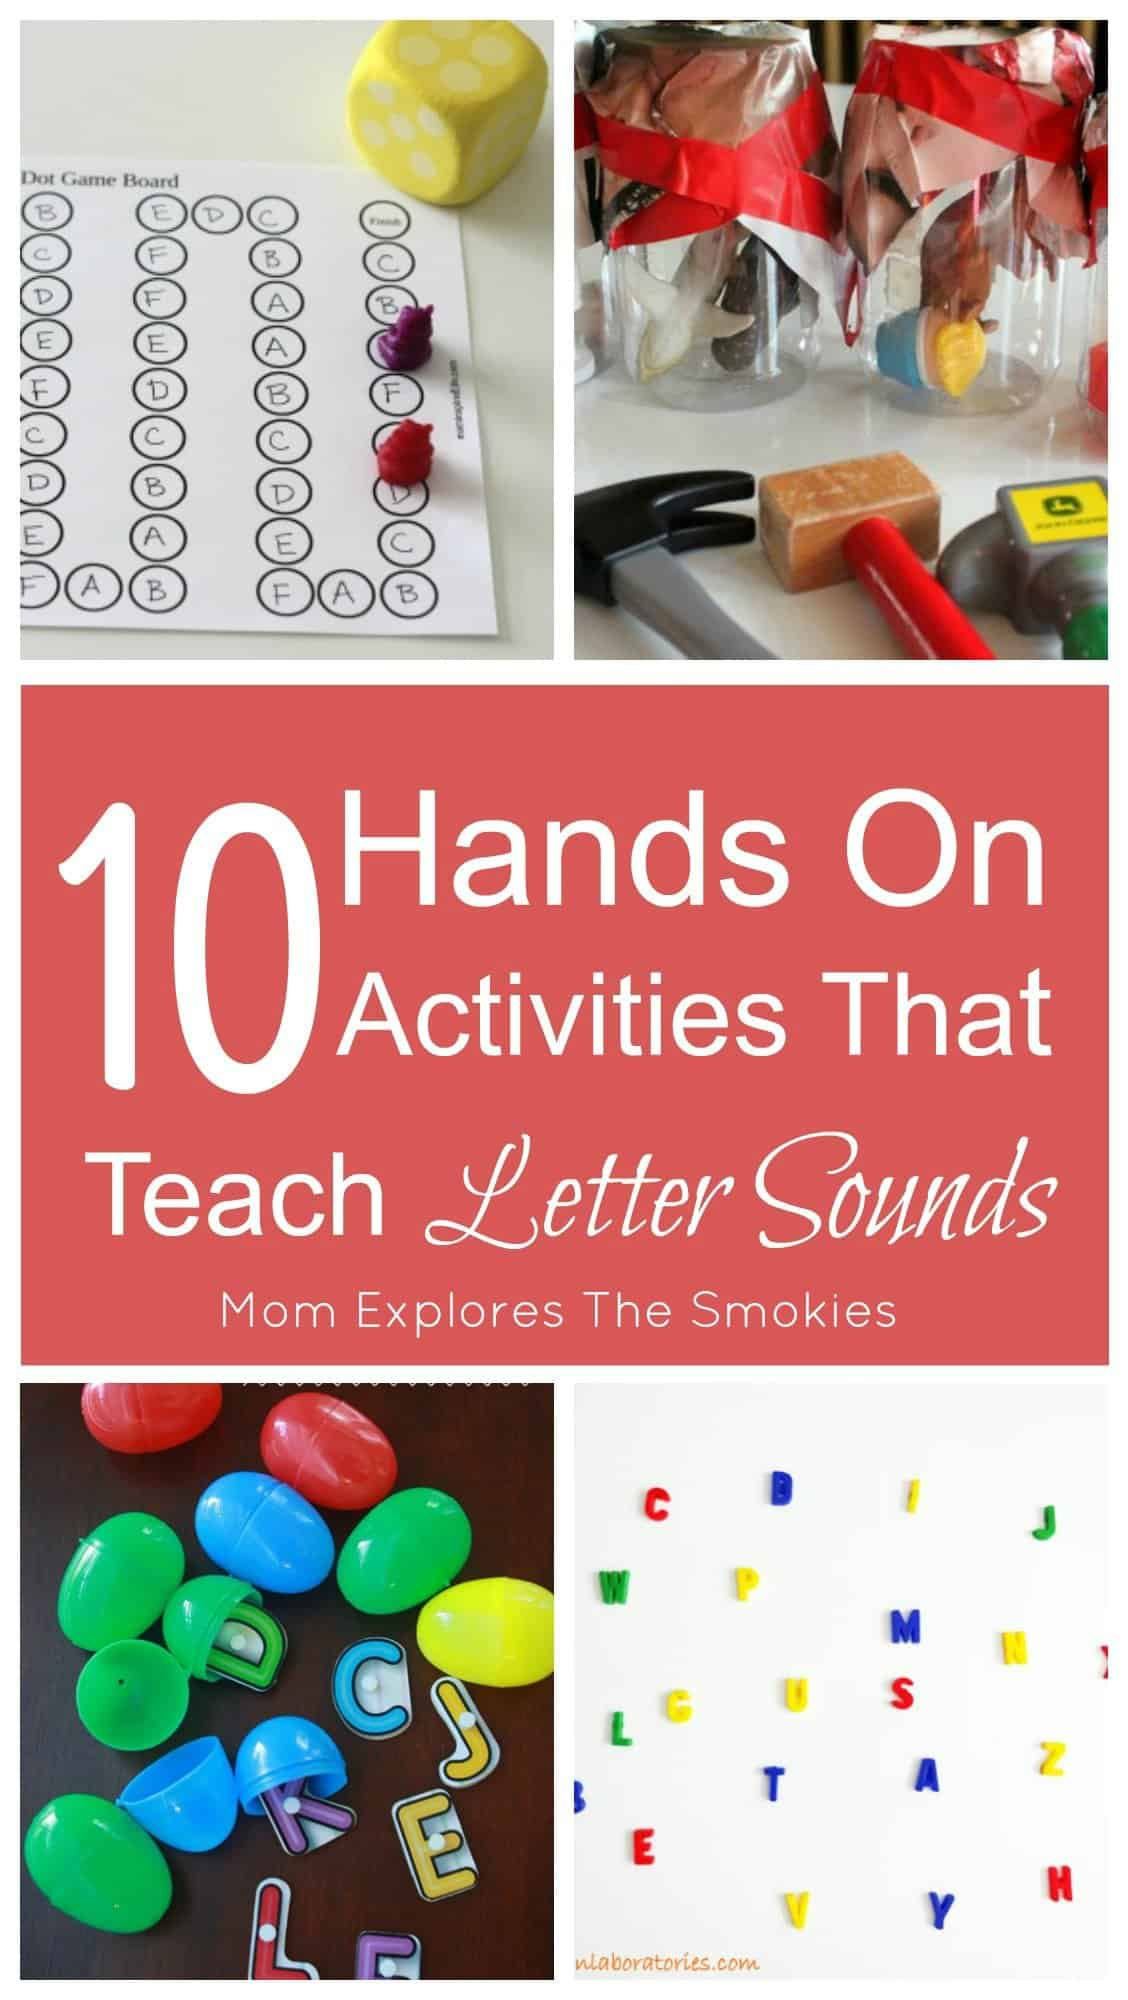 photo regarding Making 10 Games Printable identify 10 Arms Upon Actions That Train Letter Seems Mother